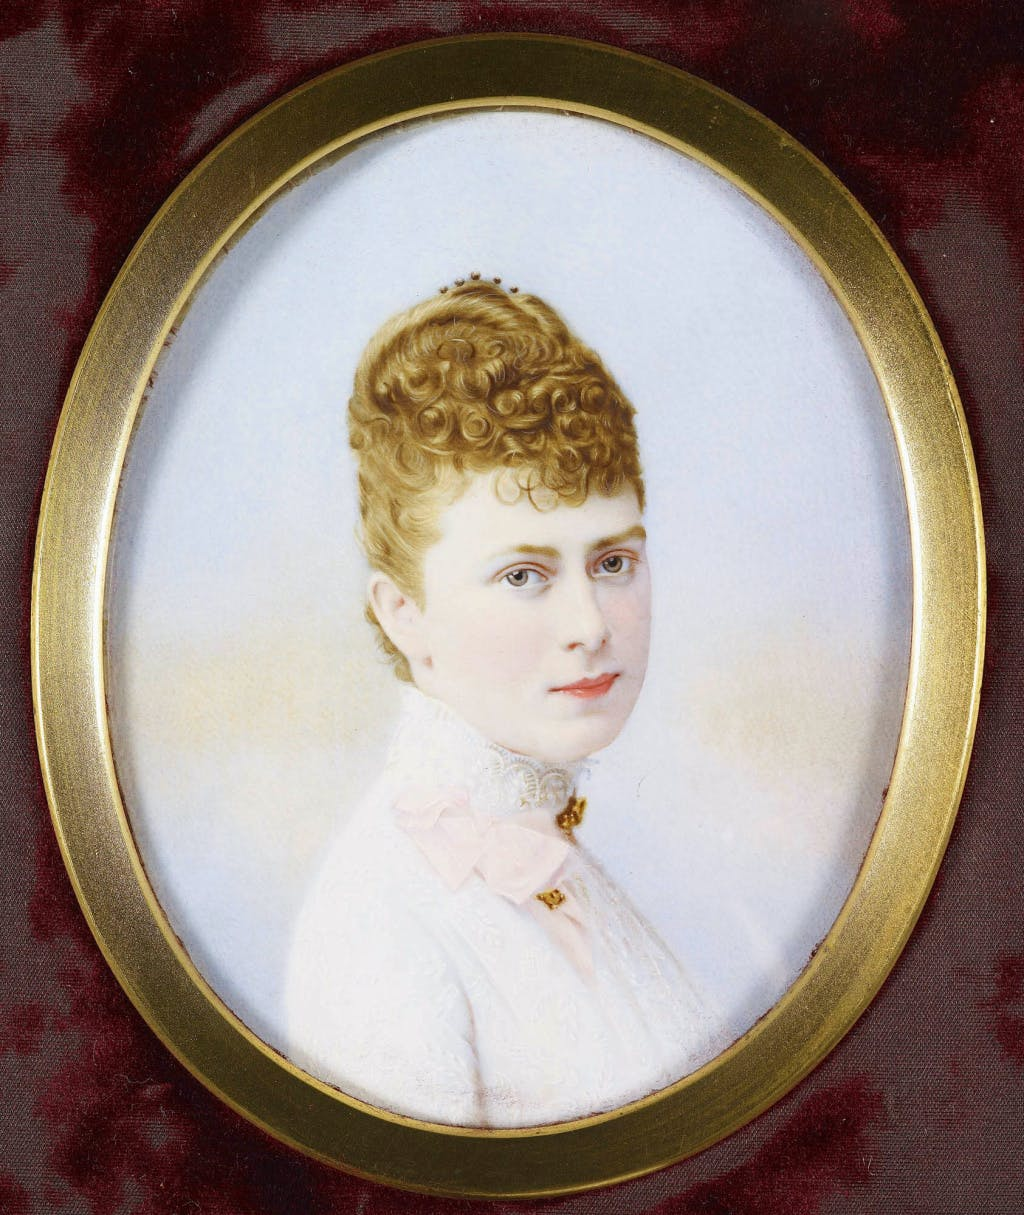 Watercolour of Queen Mary when Princess Mary of Teck, 1887